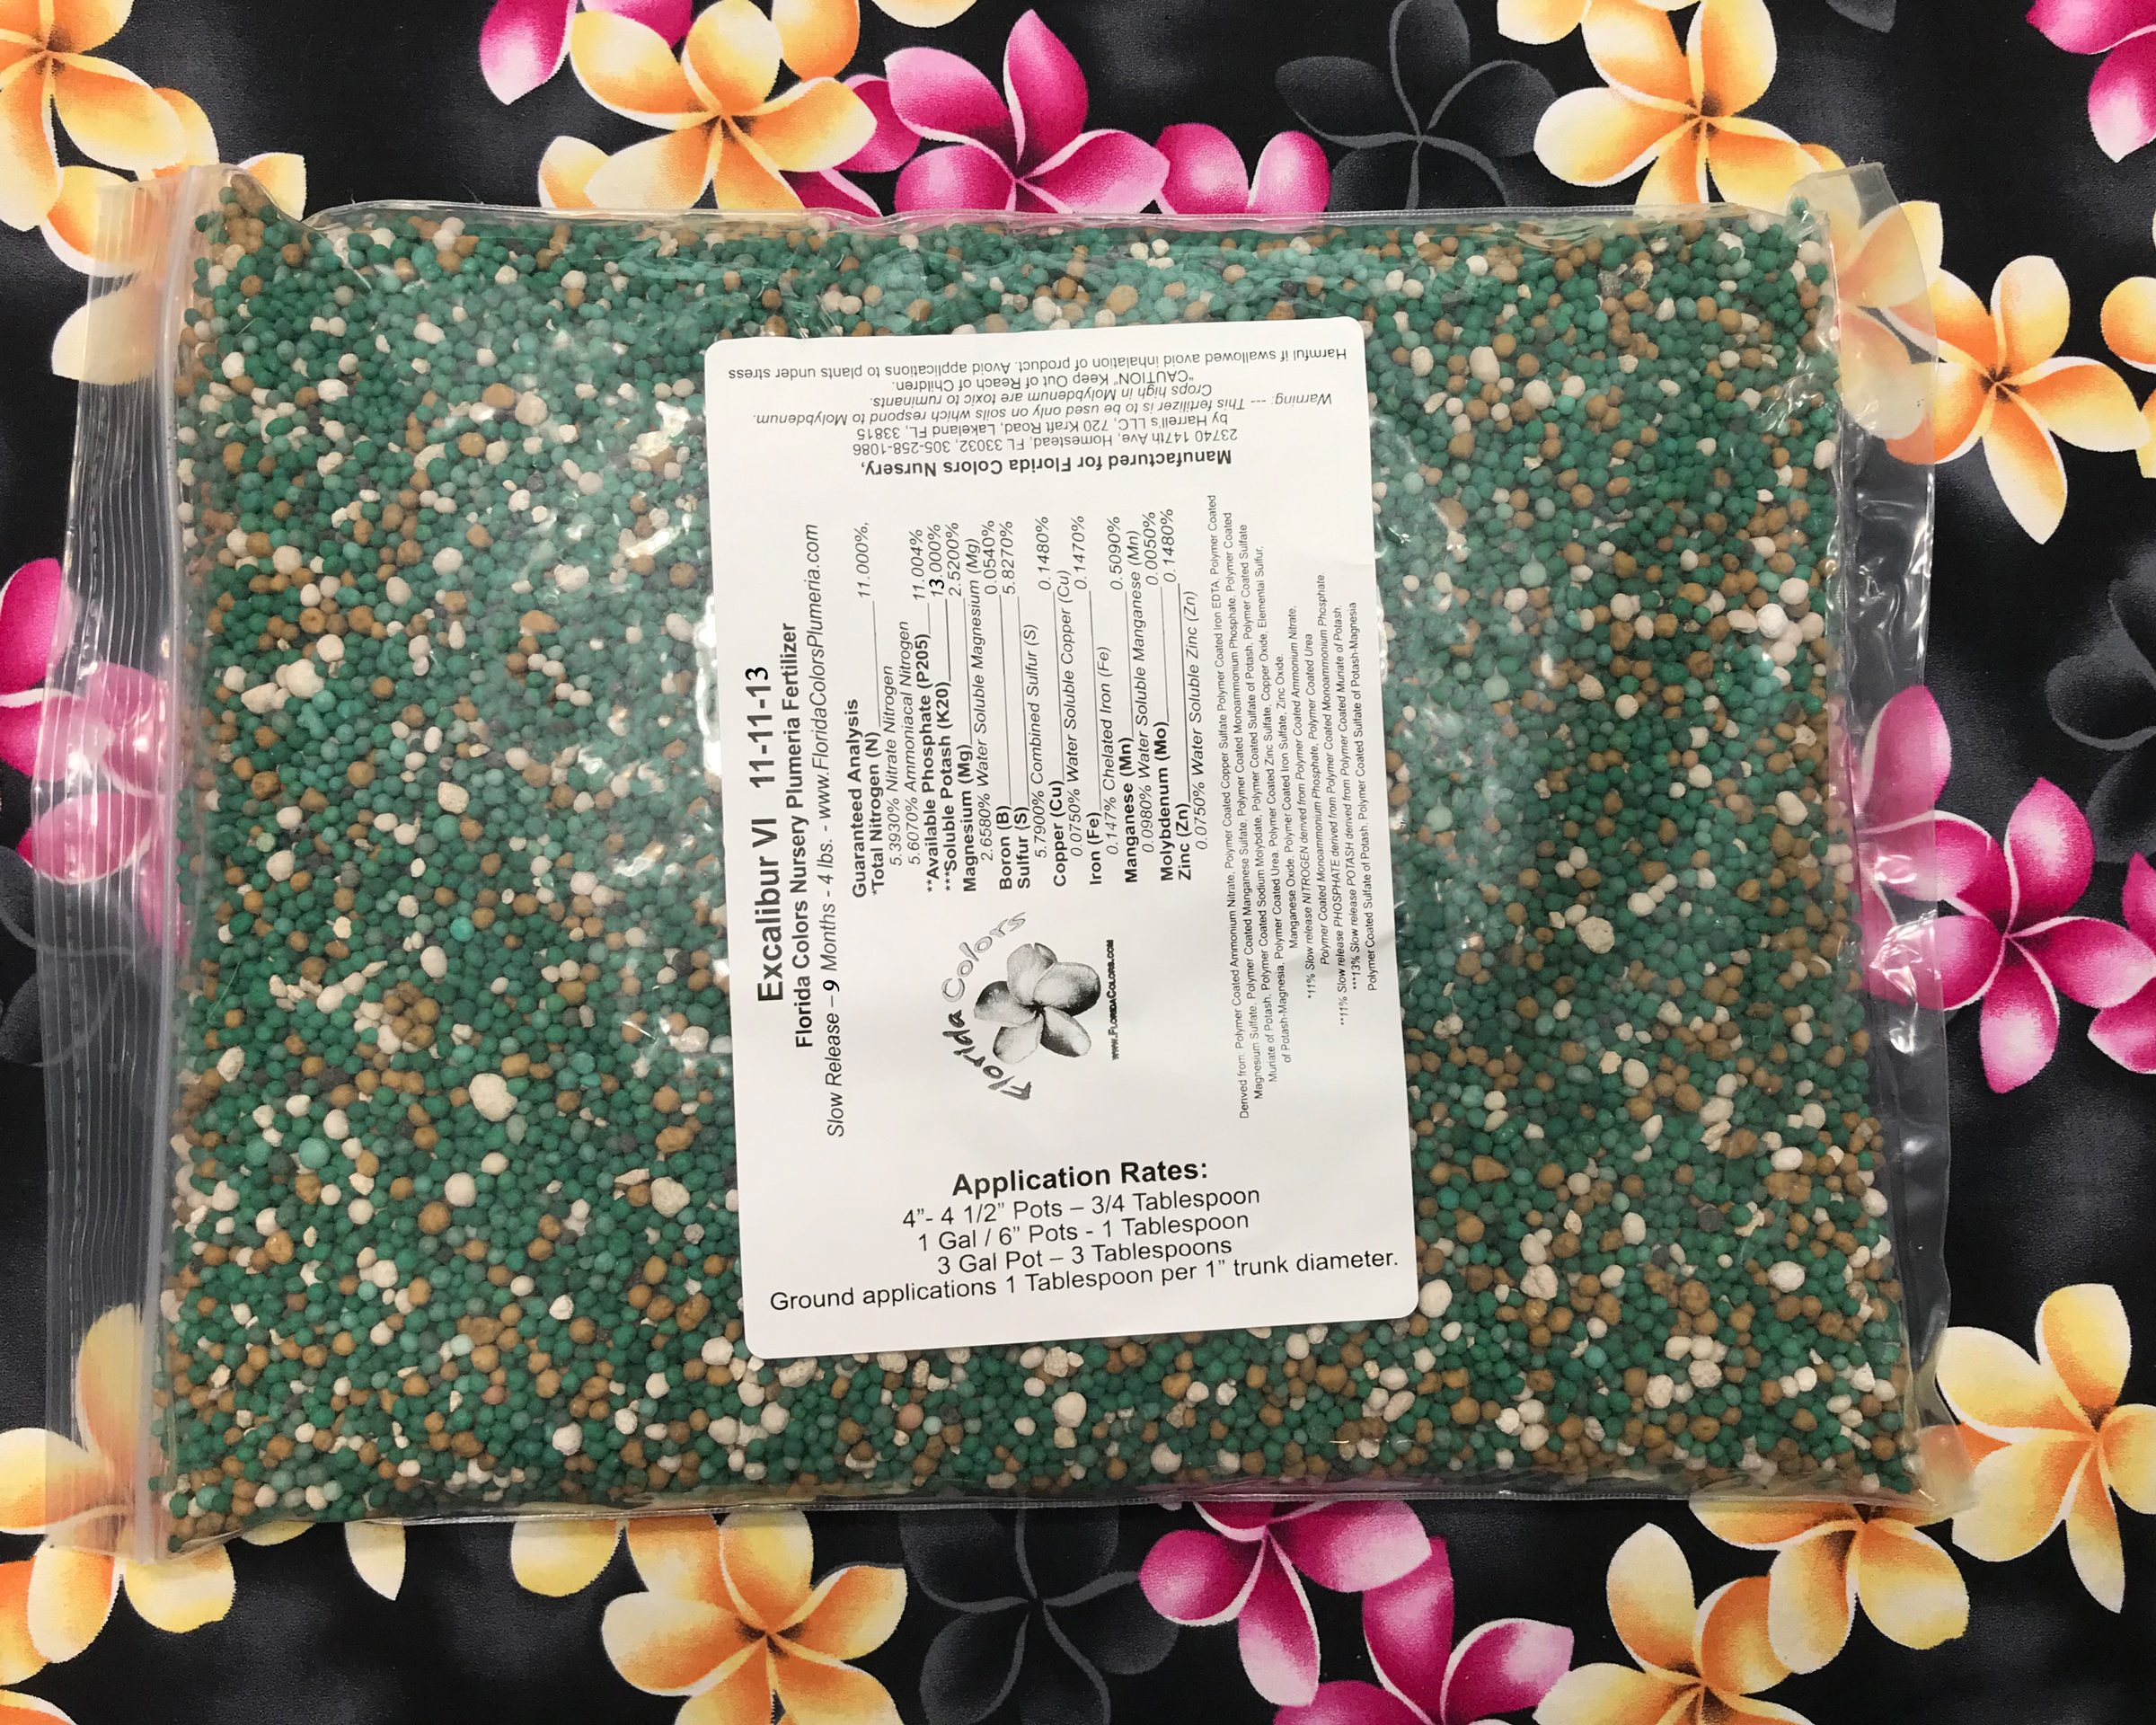 Excalibur Plumeria Fertilizer IX (11-11-13) 4 lbs (Includes Shipping)